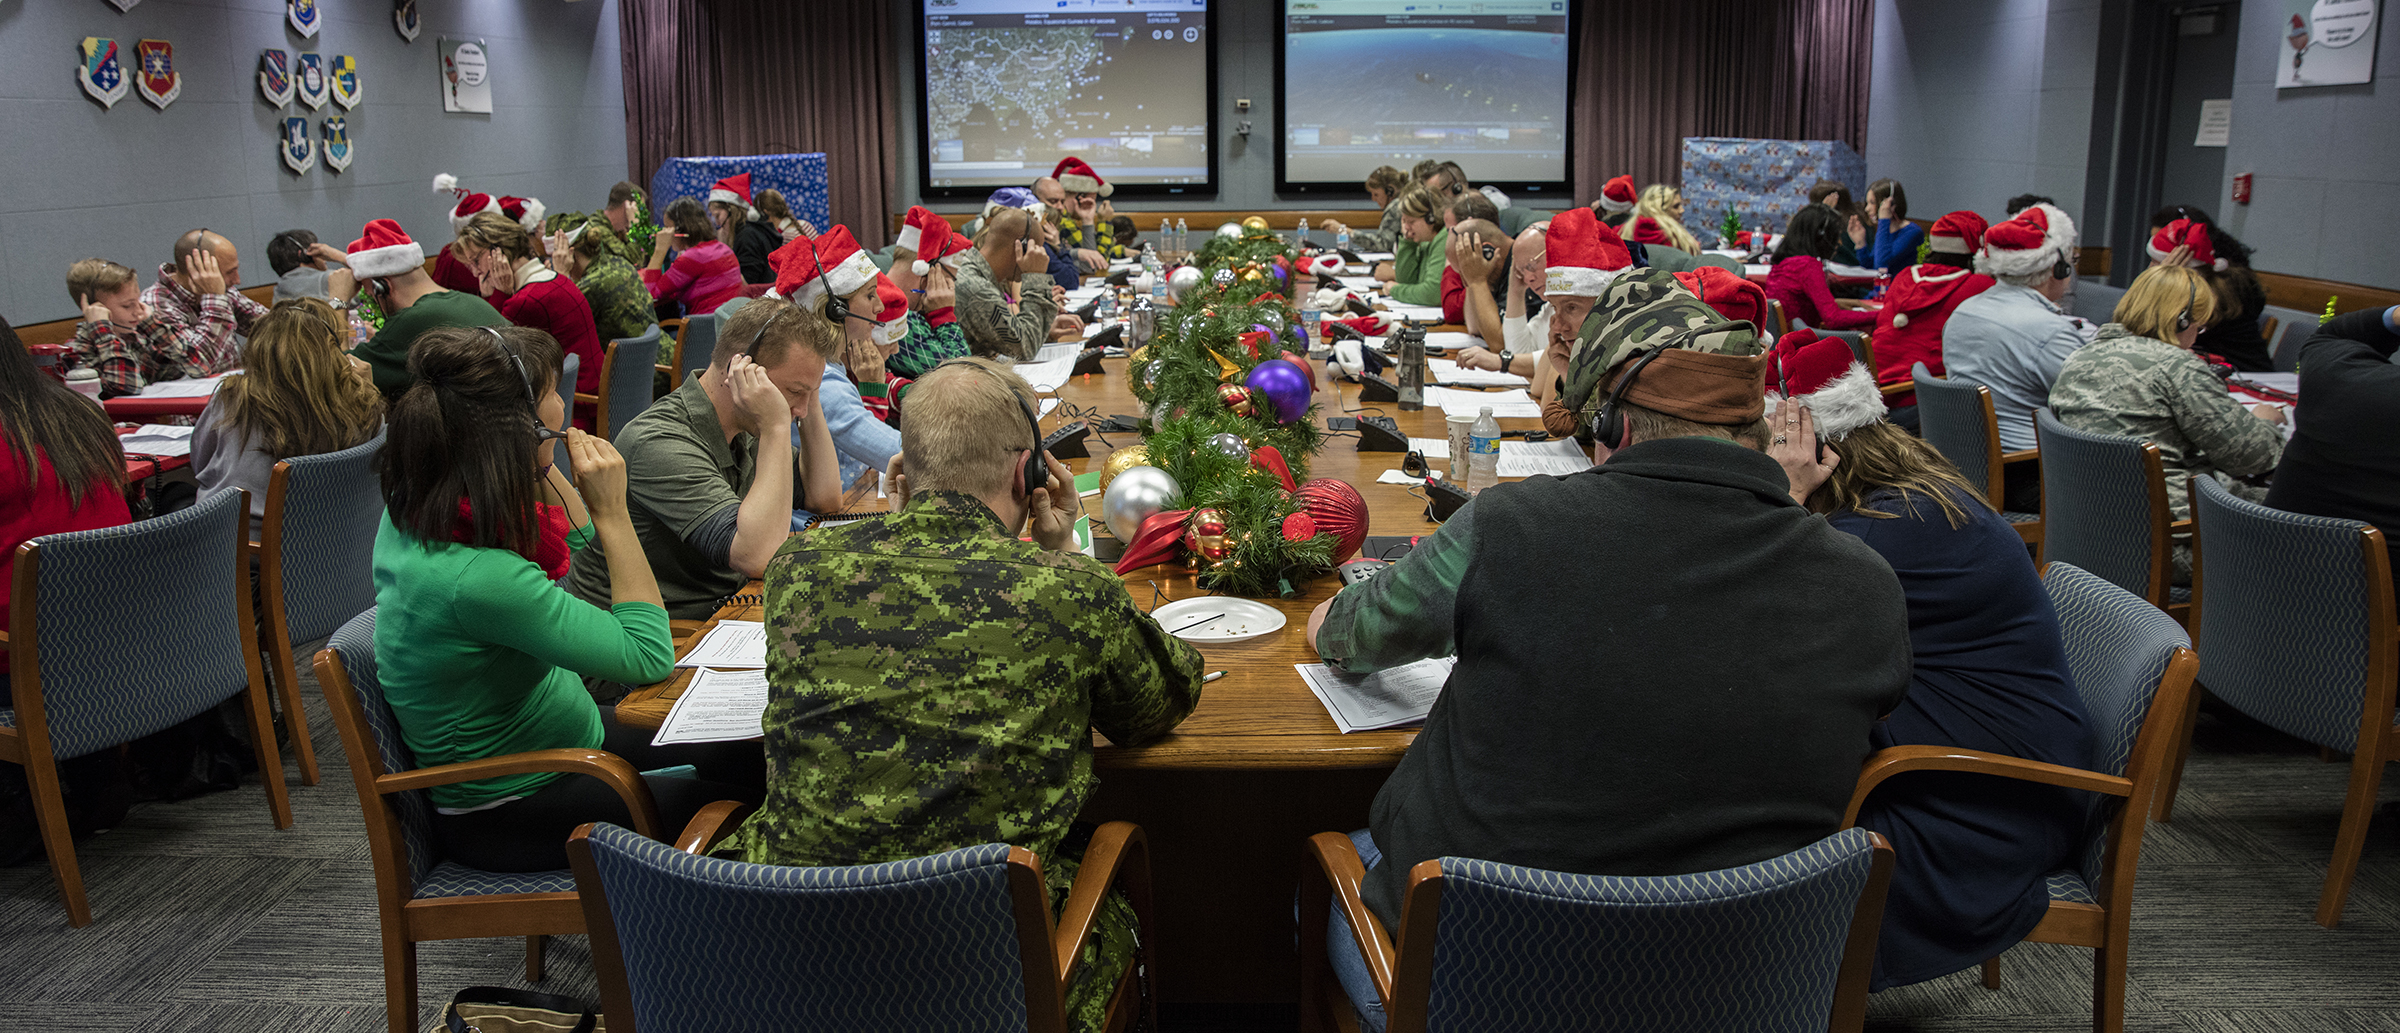 Canadian and American, military and civilian: volunteers answer phones during the 2016 NORAD Tracks Santa Event at Peterson Air Force Base in Colorado on December 24. PHOTO: Dennis Carlyle, NORAD, 161224-F-CN249-980